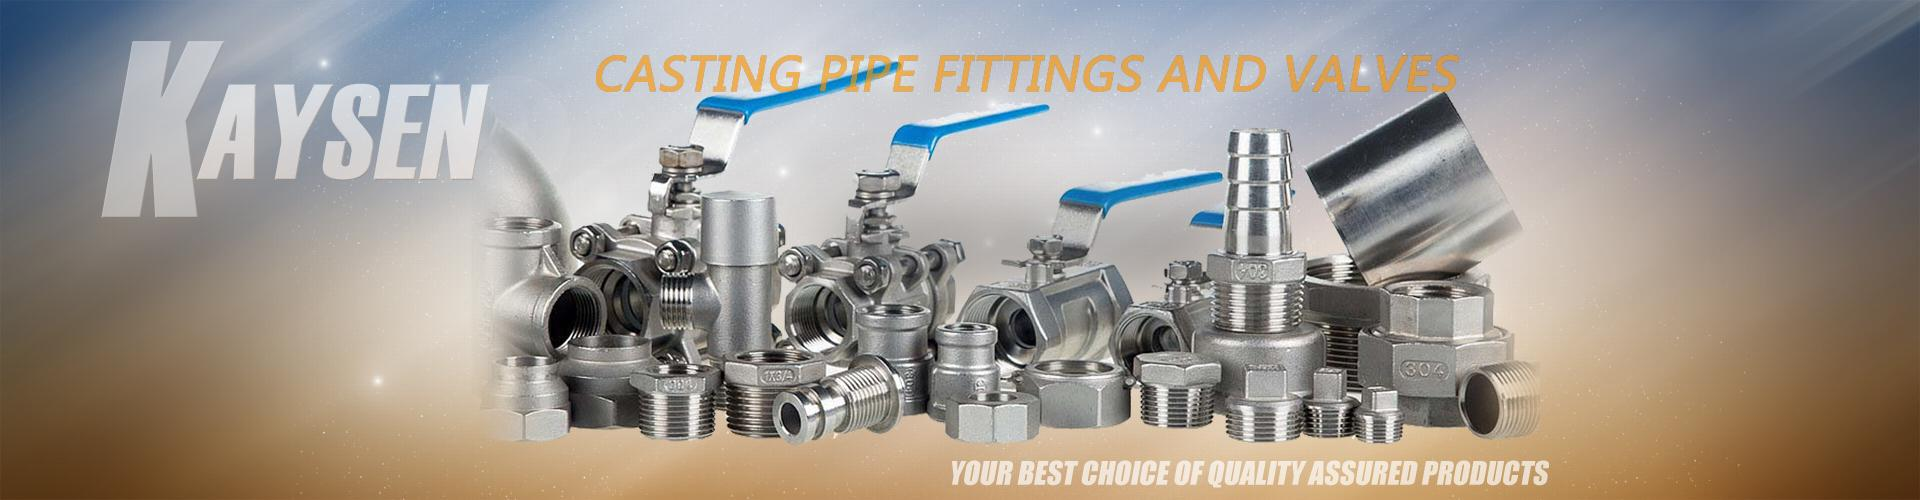 China Casting Pipe Fitting supplier